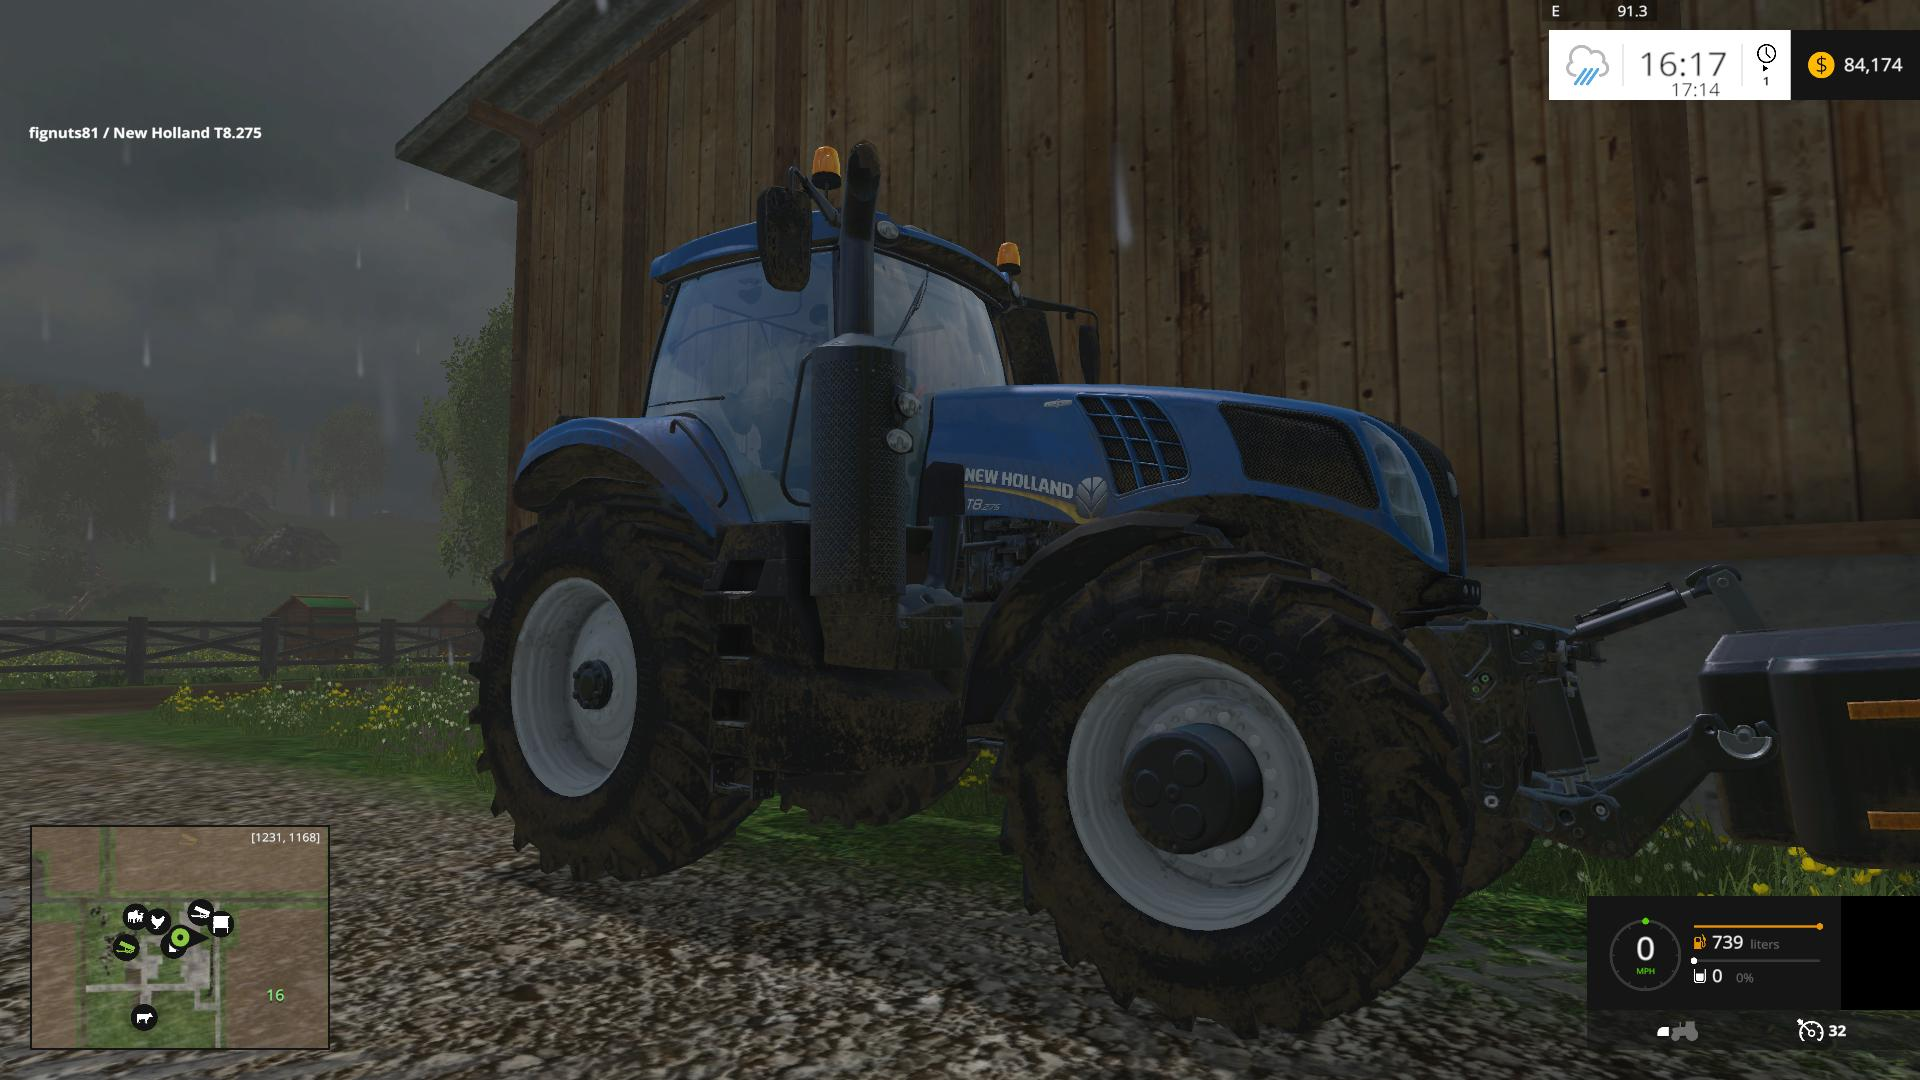 new-holland-t8-275_2